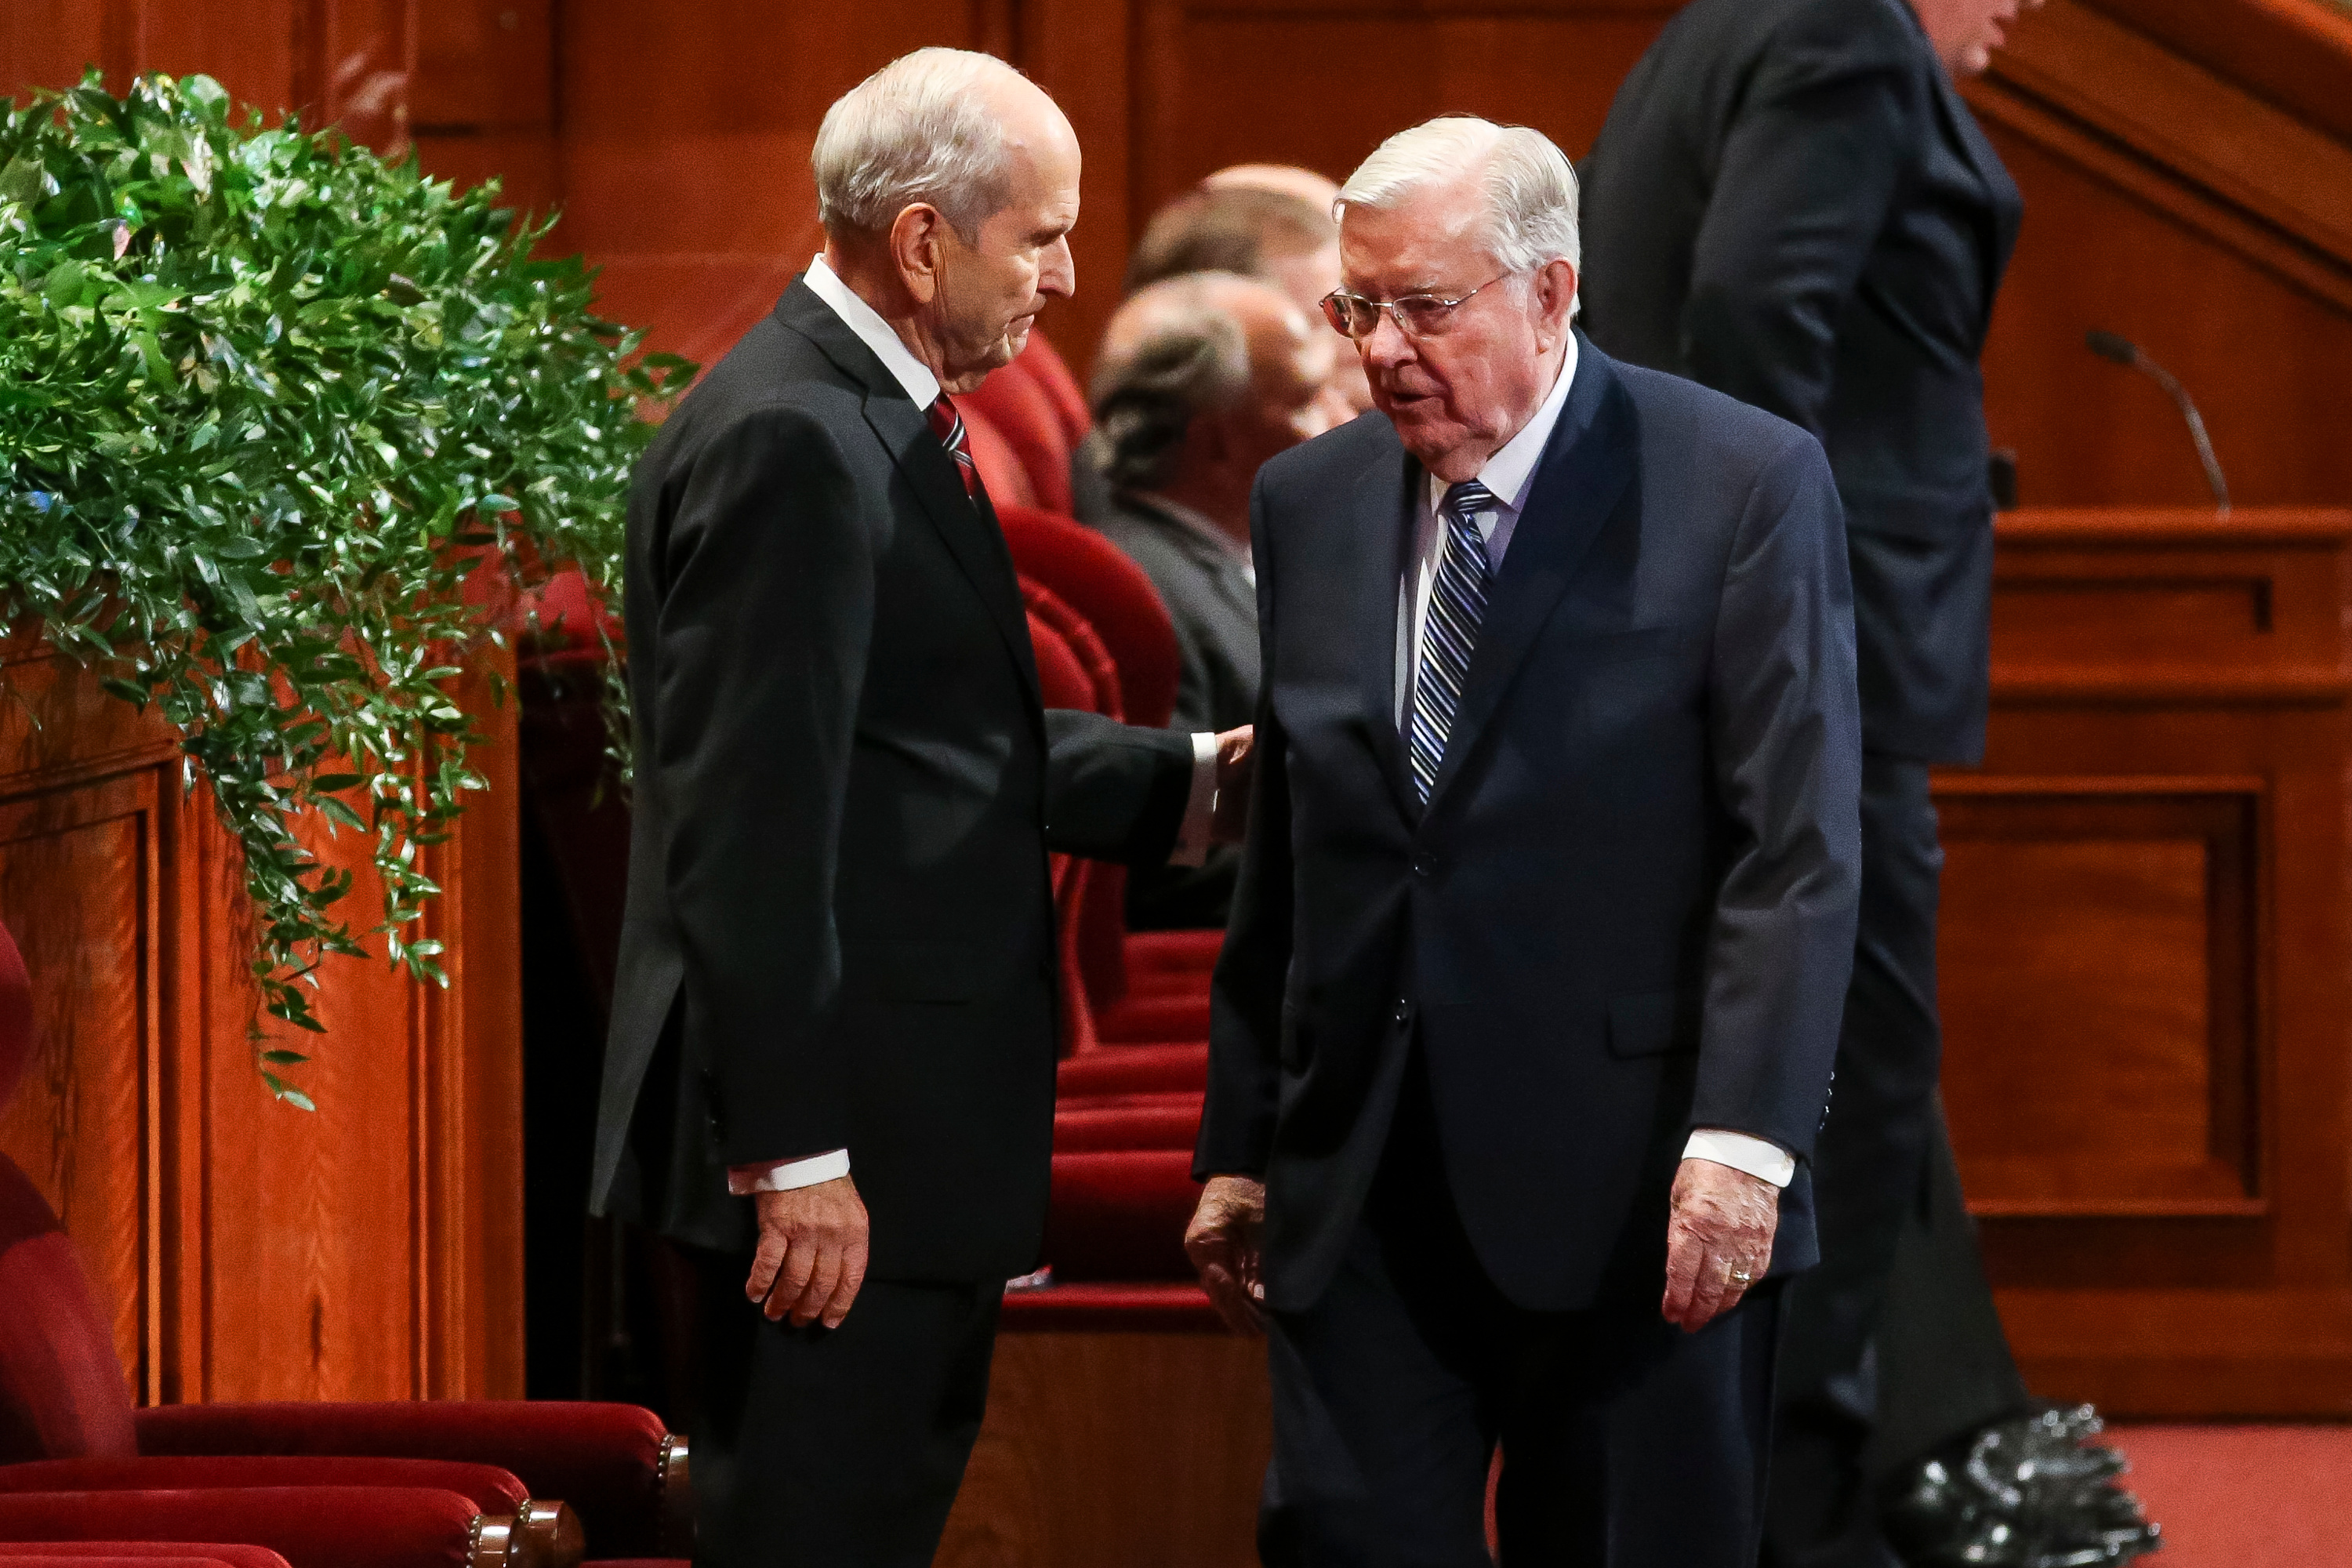 President Russell M. Nelson, left, and Elder M. Russell Ballard, both of the Quorum of the Twelve Apostles, greet each other at the start of the Saturday afternoon session of the Church's 187th Semiannual General Conference in Salt Lake City on Saturday, Sept. 30, 2017.